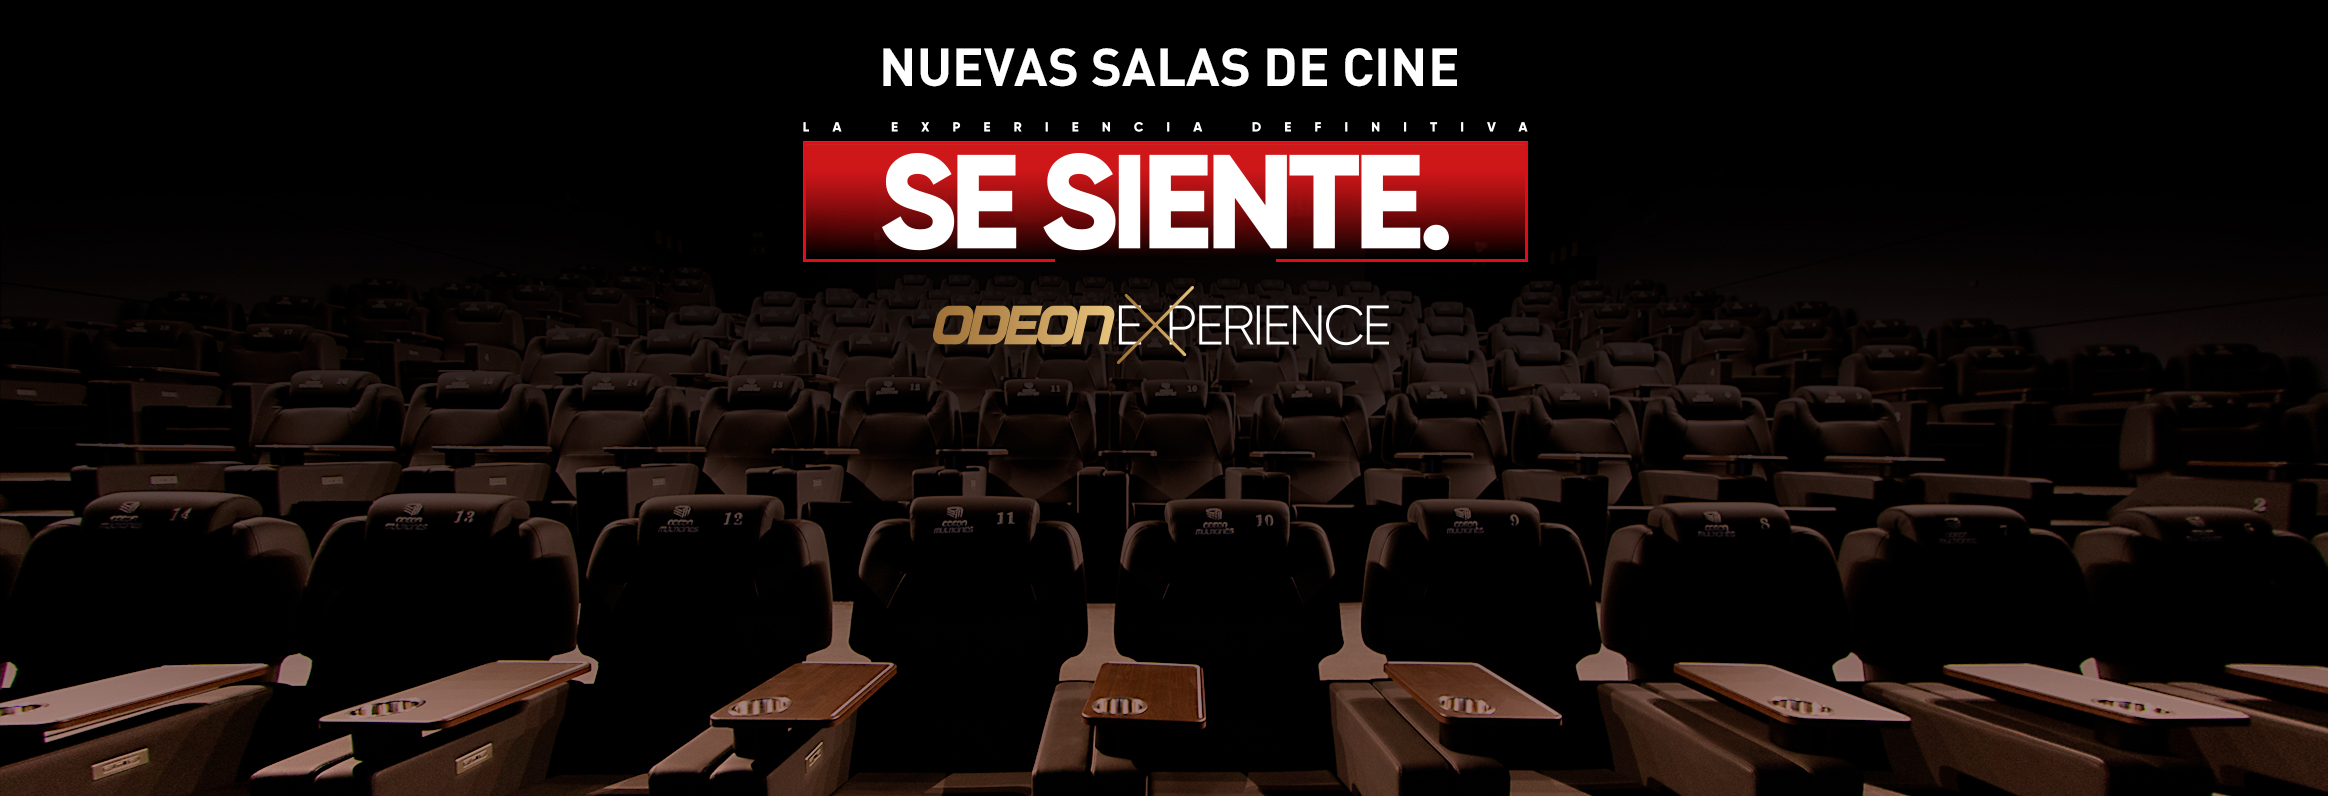 Odeon Experience